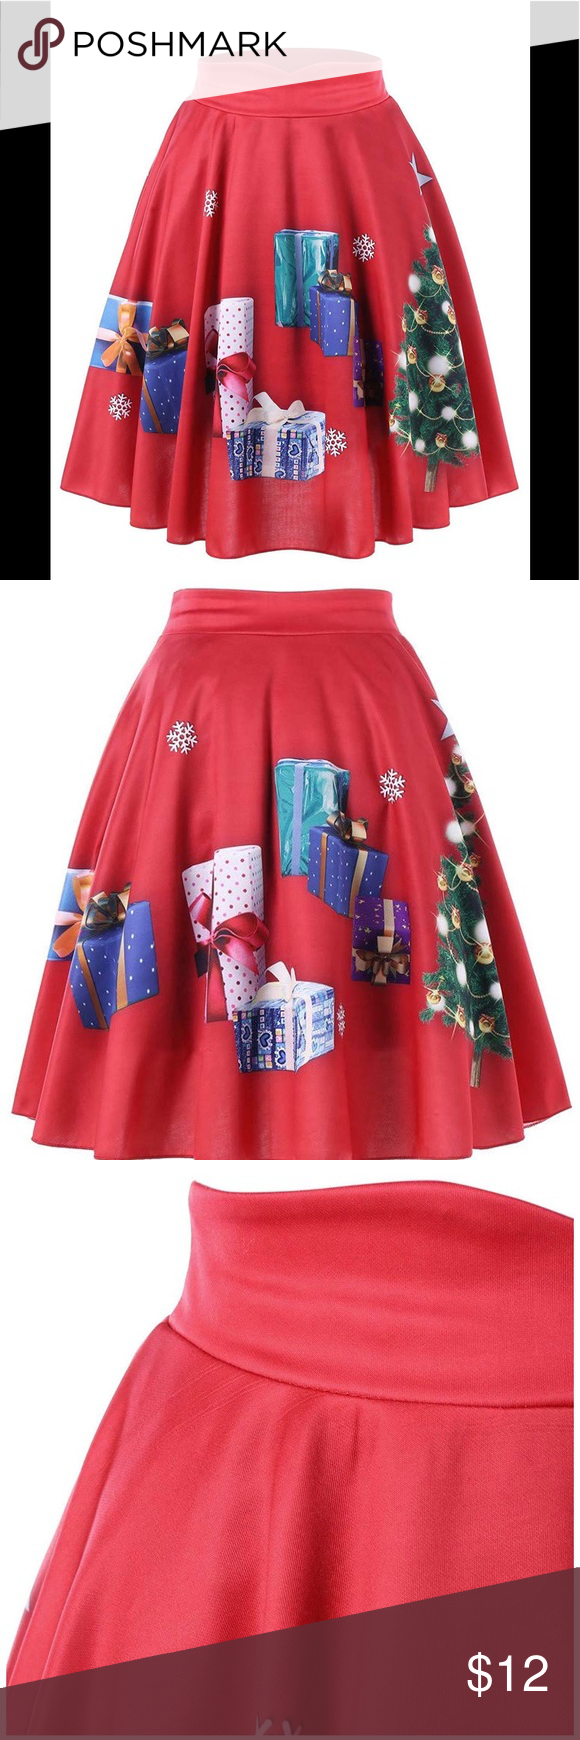 Nwot Christmas Skirts I Have Two Of These Adorable Skirts For Sale Brand New